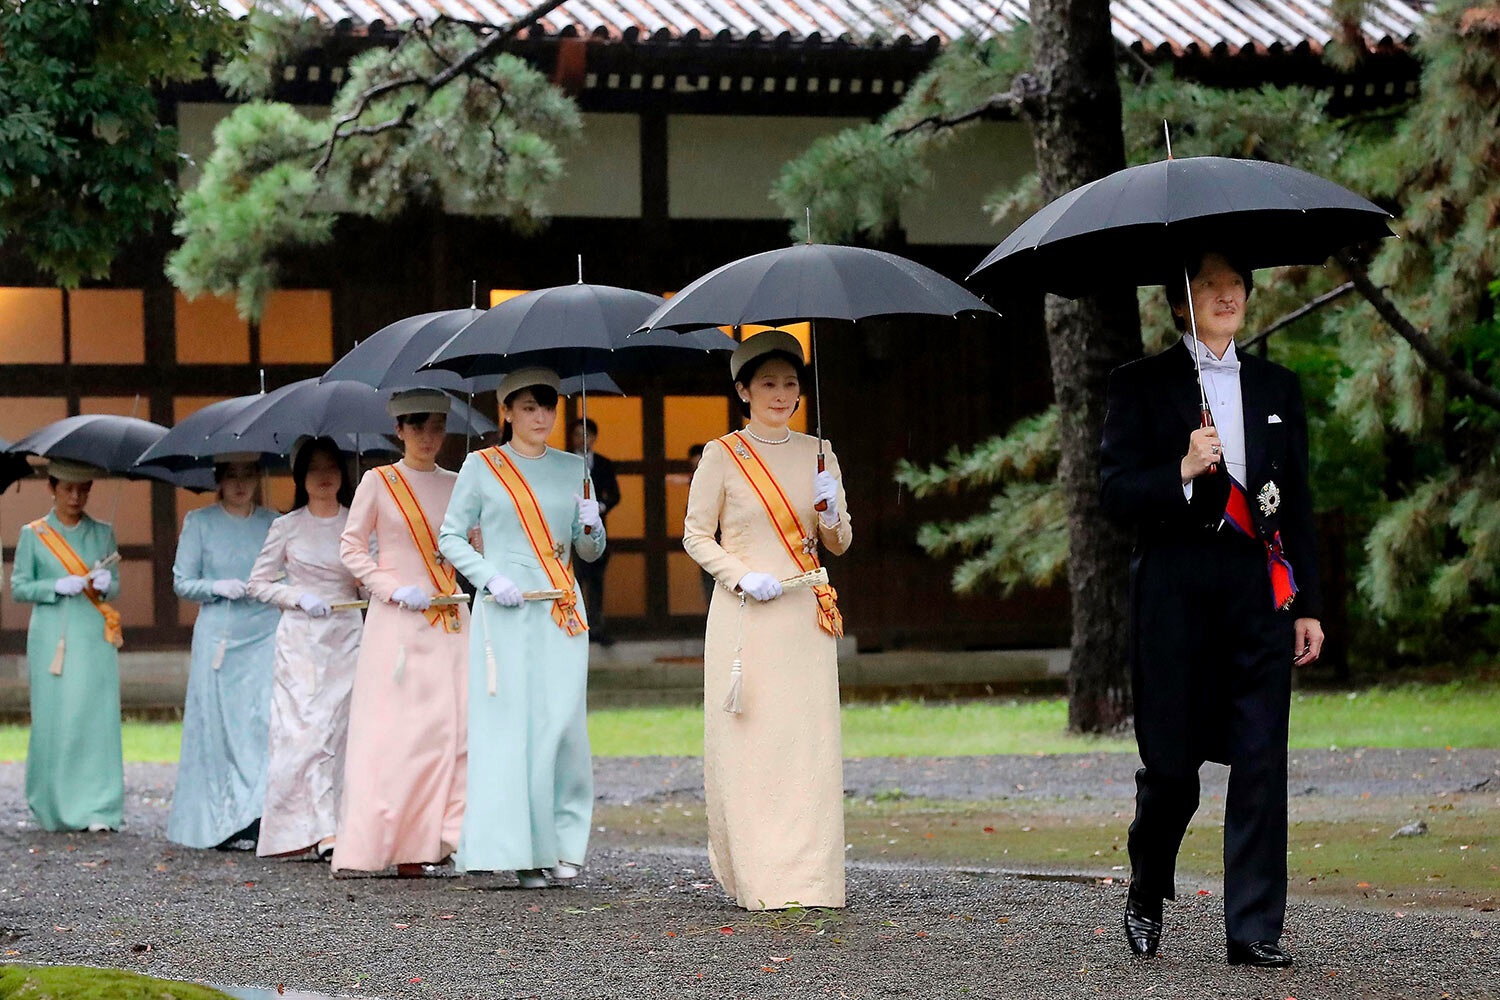 """Japan's Crown Prince Akishino, right, and Crown Princess Kiko, second from right, arrive for the ceremony at """"Kashikodokoro"""", one of three shrines at the Imperial Palace, in Tokyo, Tuesday, Oct. 22, 2019. Emperor Naruhito and Empress Masako visited three Shinto shrines at the Imperial Palace before Naruhito proclaimed himself Japan's 126th emperor in an enthronement ceremony. (Kyodo News via AP)"""